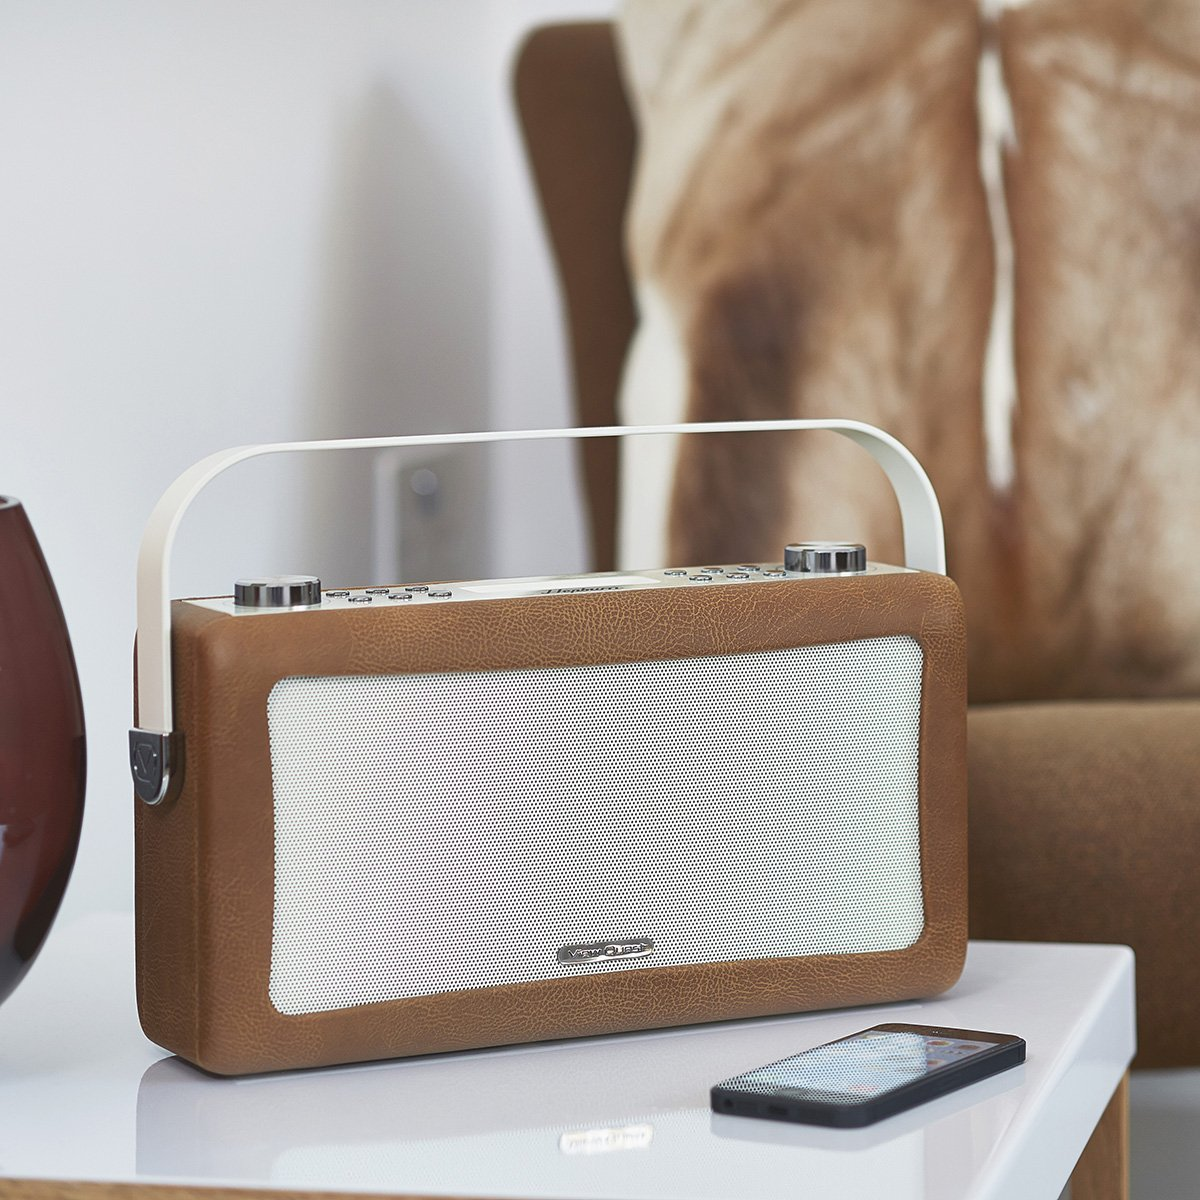 boom reviews - View Quest Hepburn DAB radio